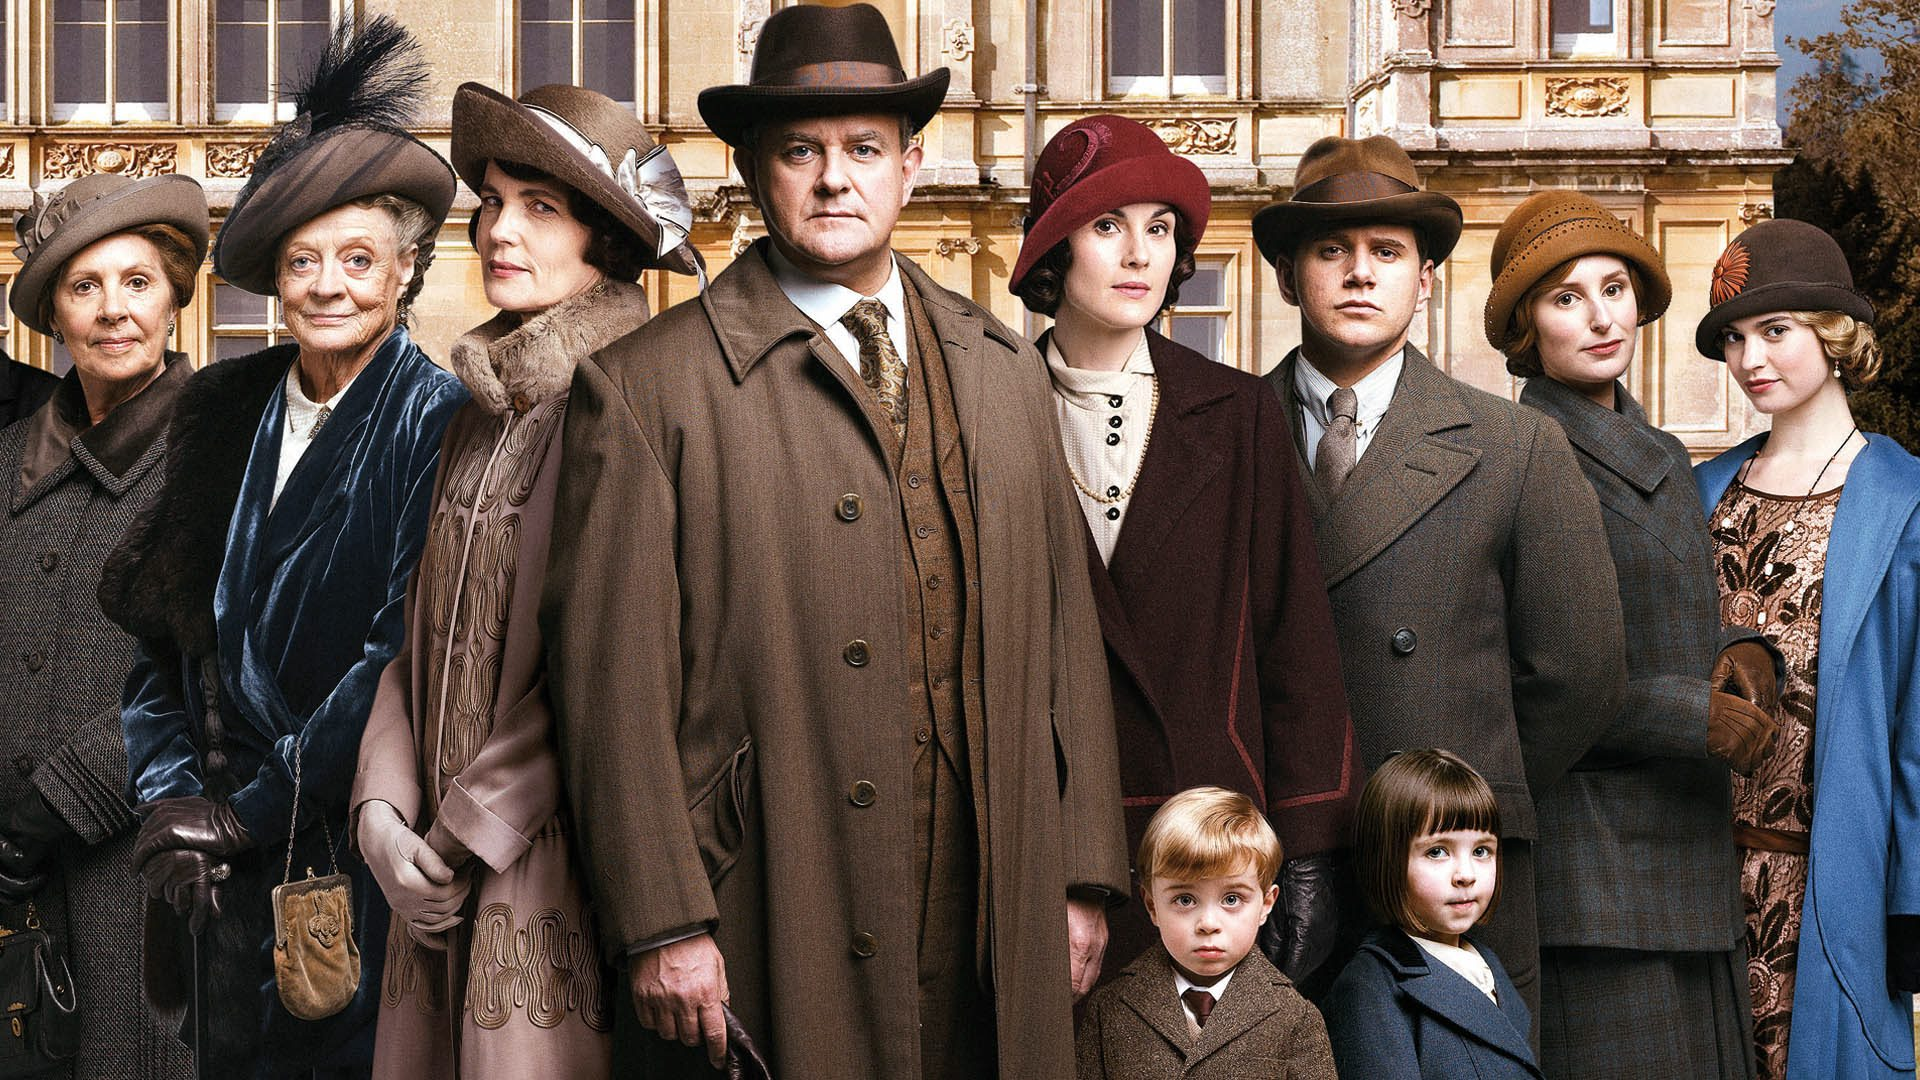 'Downton Abbey' has been a huge success for PBS and local affiliate WNED. (News file photo)